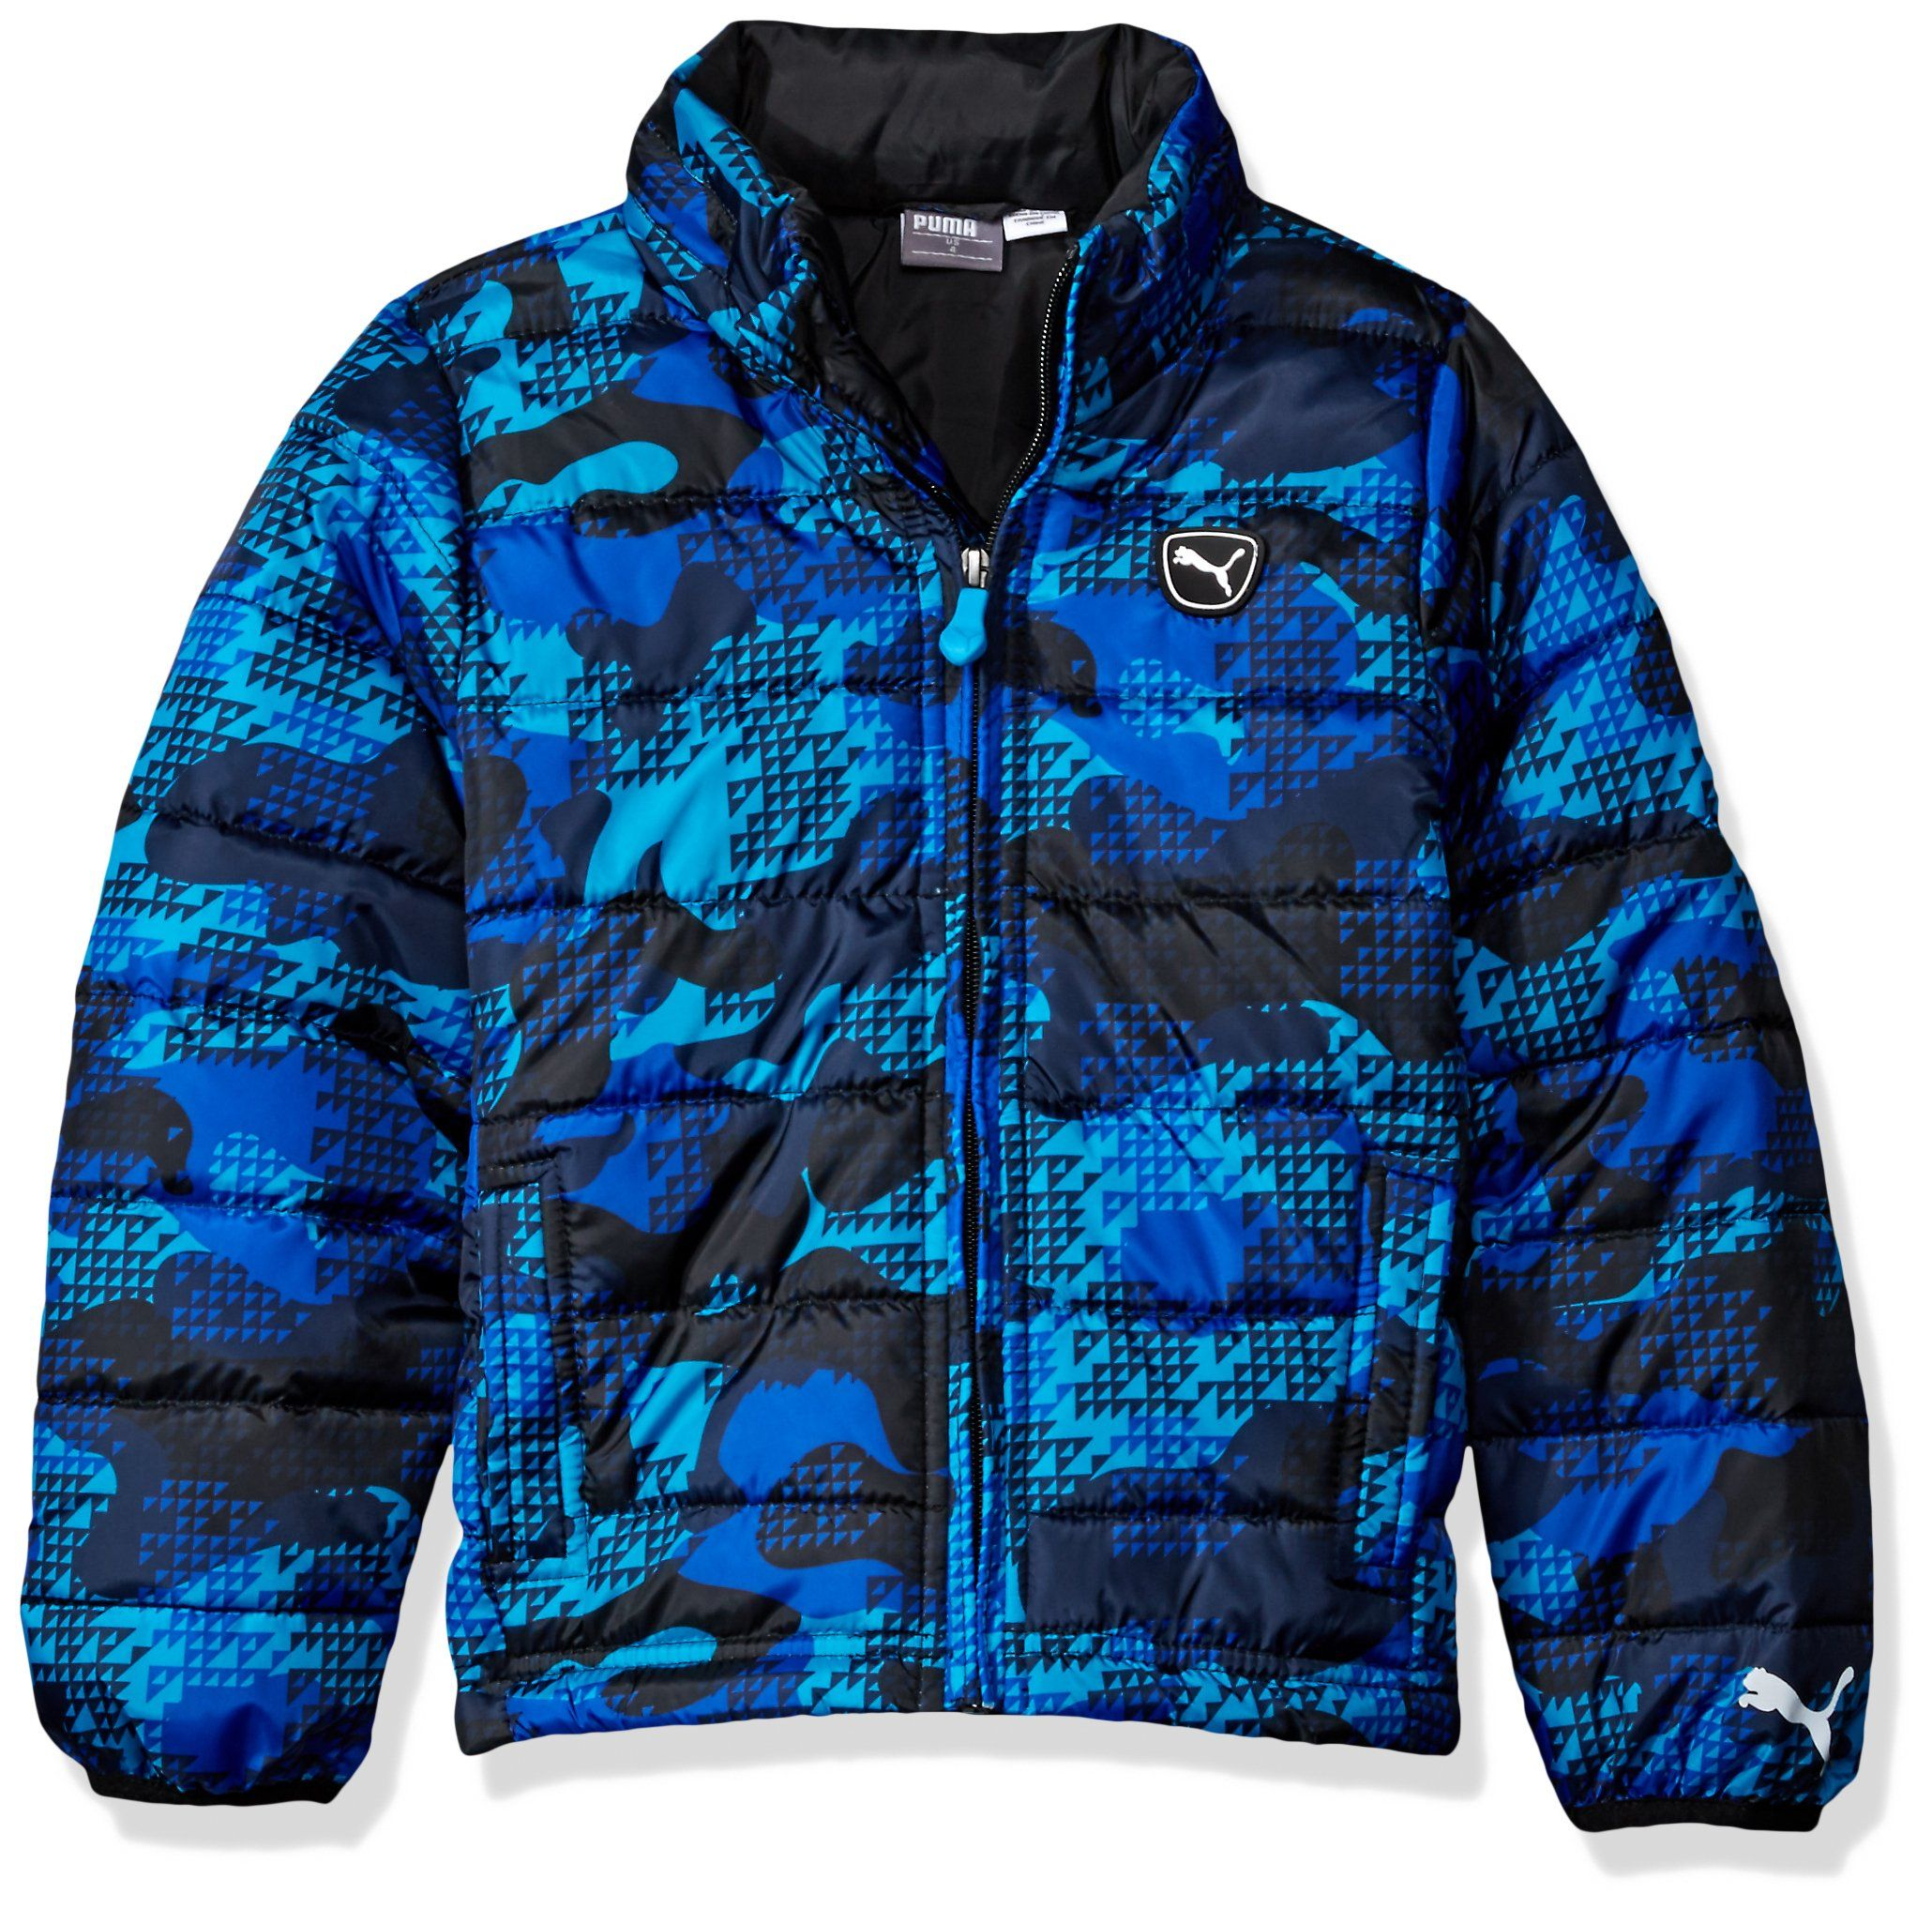 Puma Little Boys All Over Printed Jacket Atomic Blue 5 Rubber Patch Puma Logo Zipper Pull Jackets Blue Puffer Athletic Jacket [ 2035 x 2060 Pixel ]